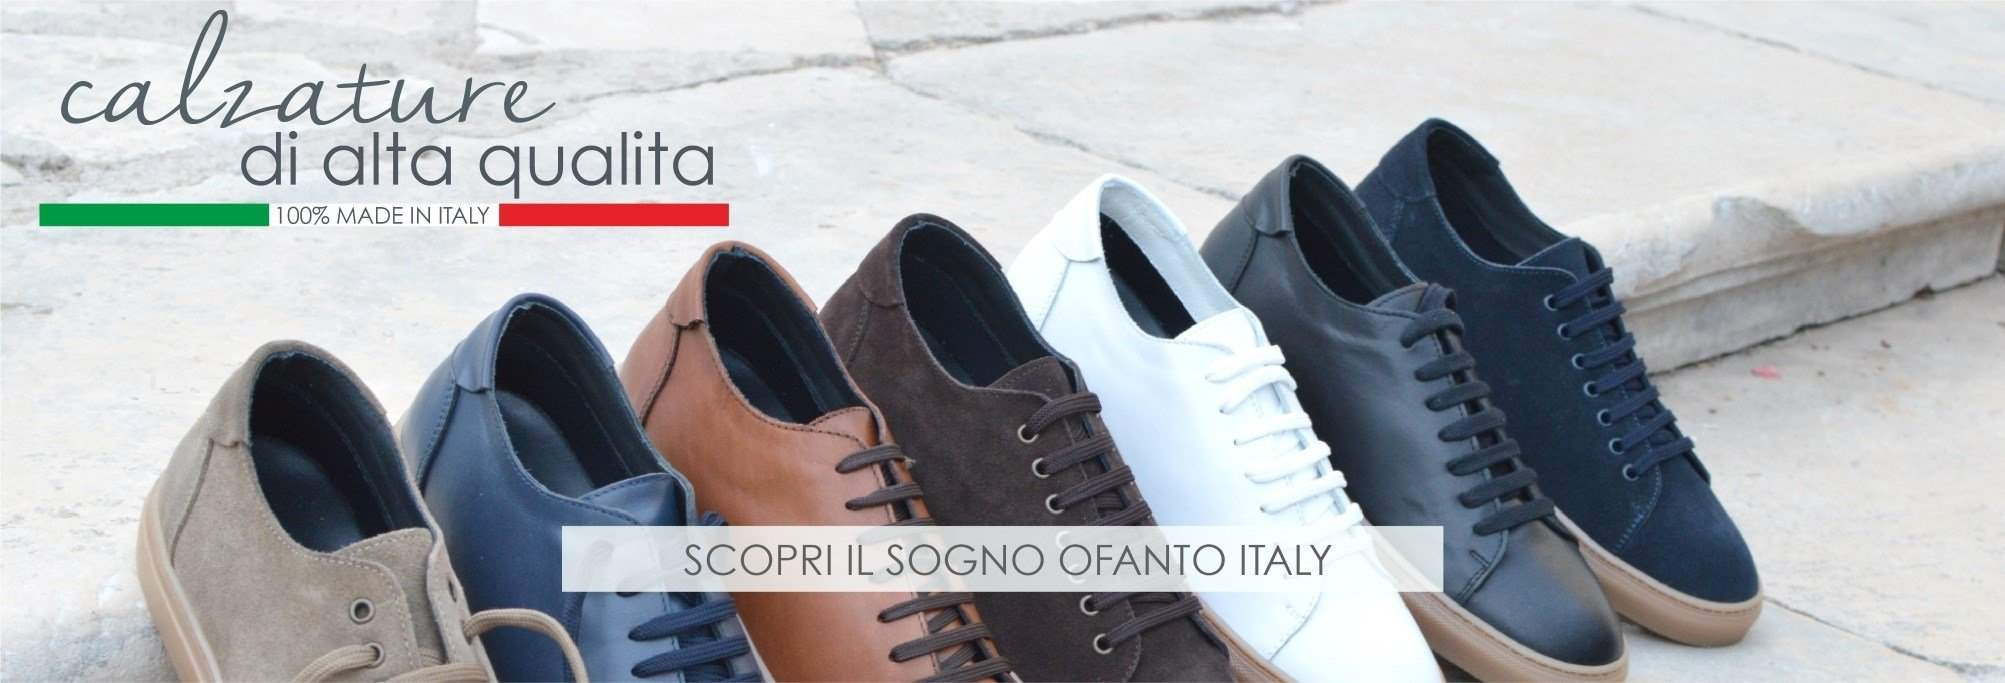 Ofanto Italy Sneakers Capri Collection